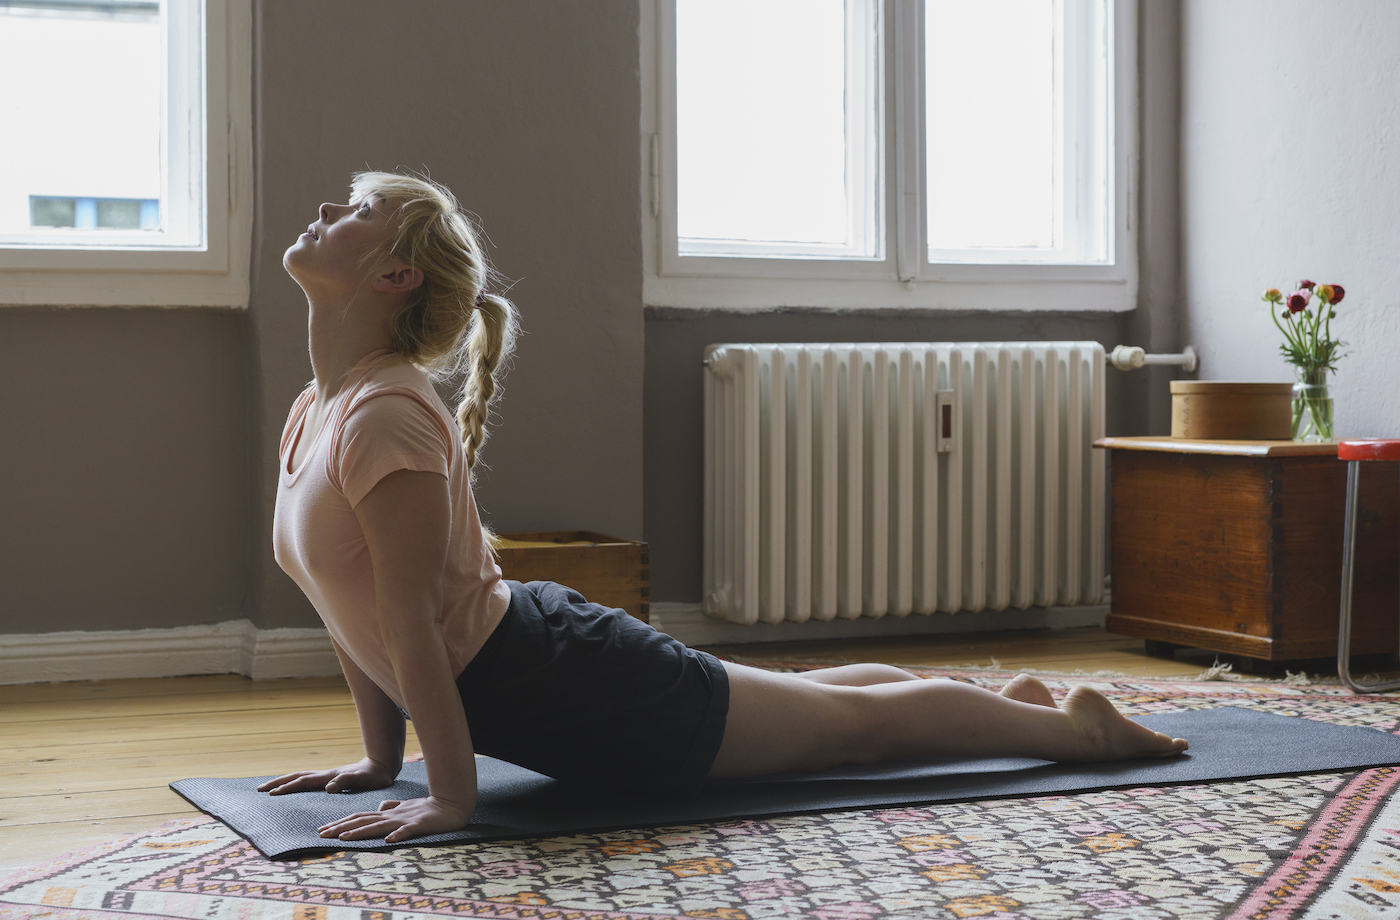 The 5 Tibetan Rights distill yoga's thousands of poses down to a handful